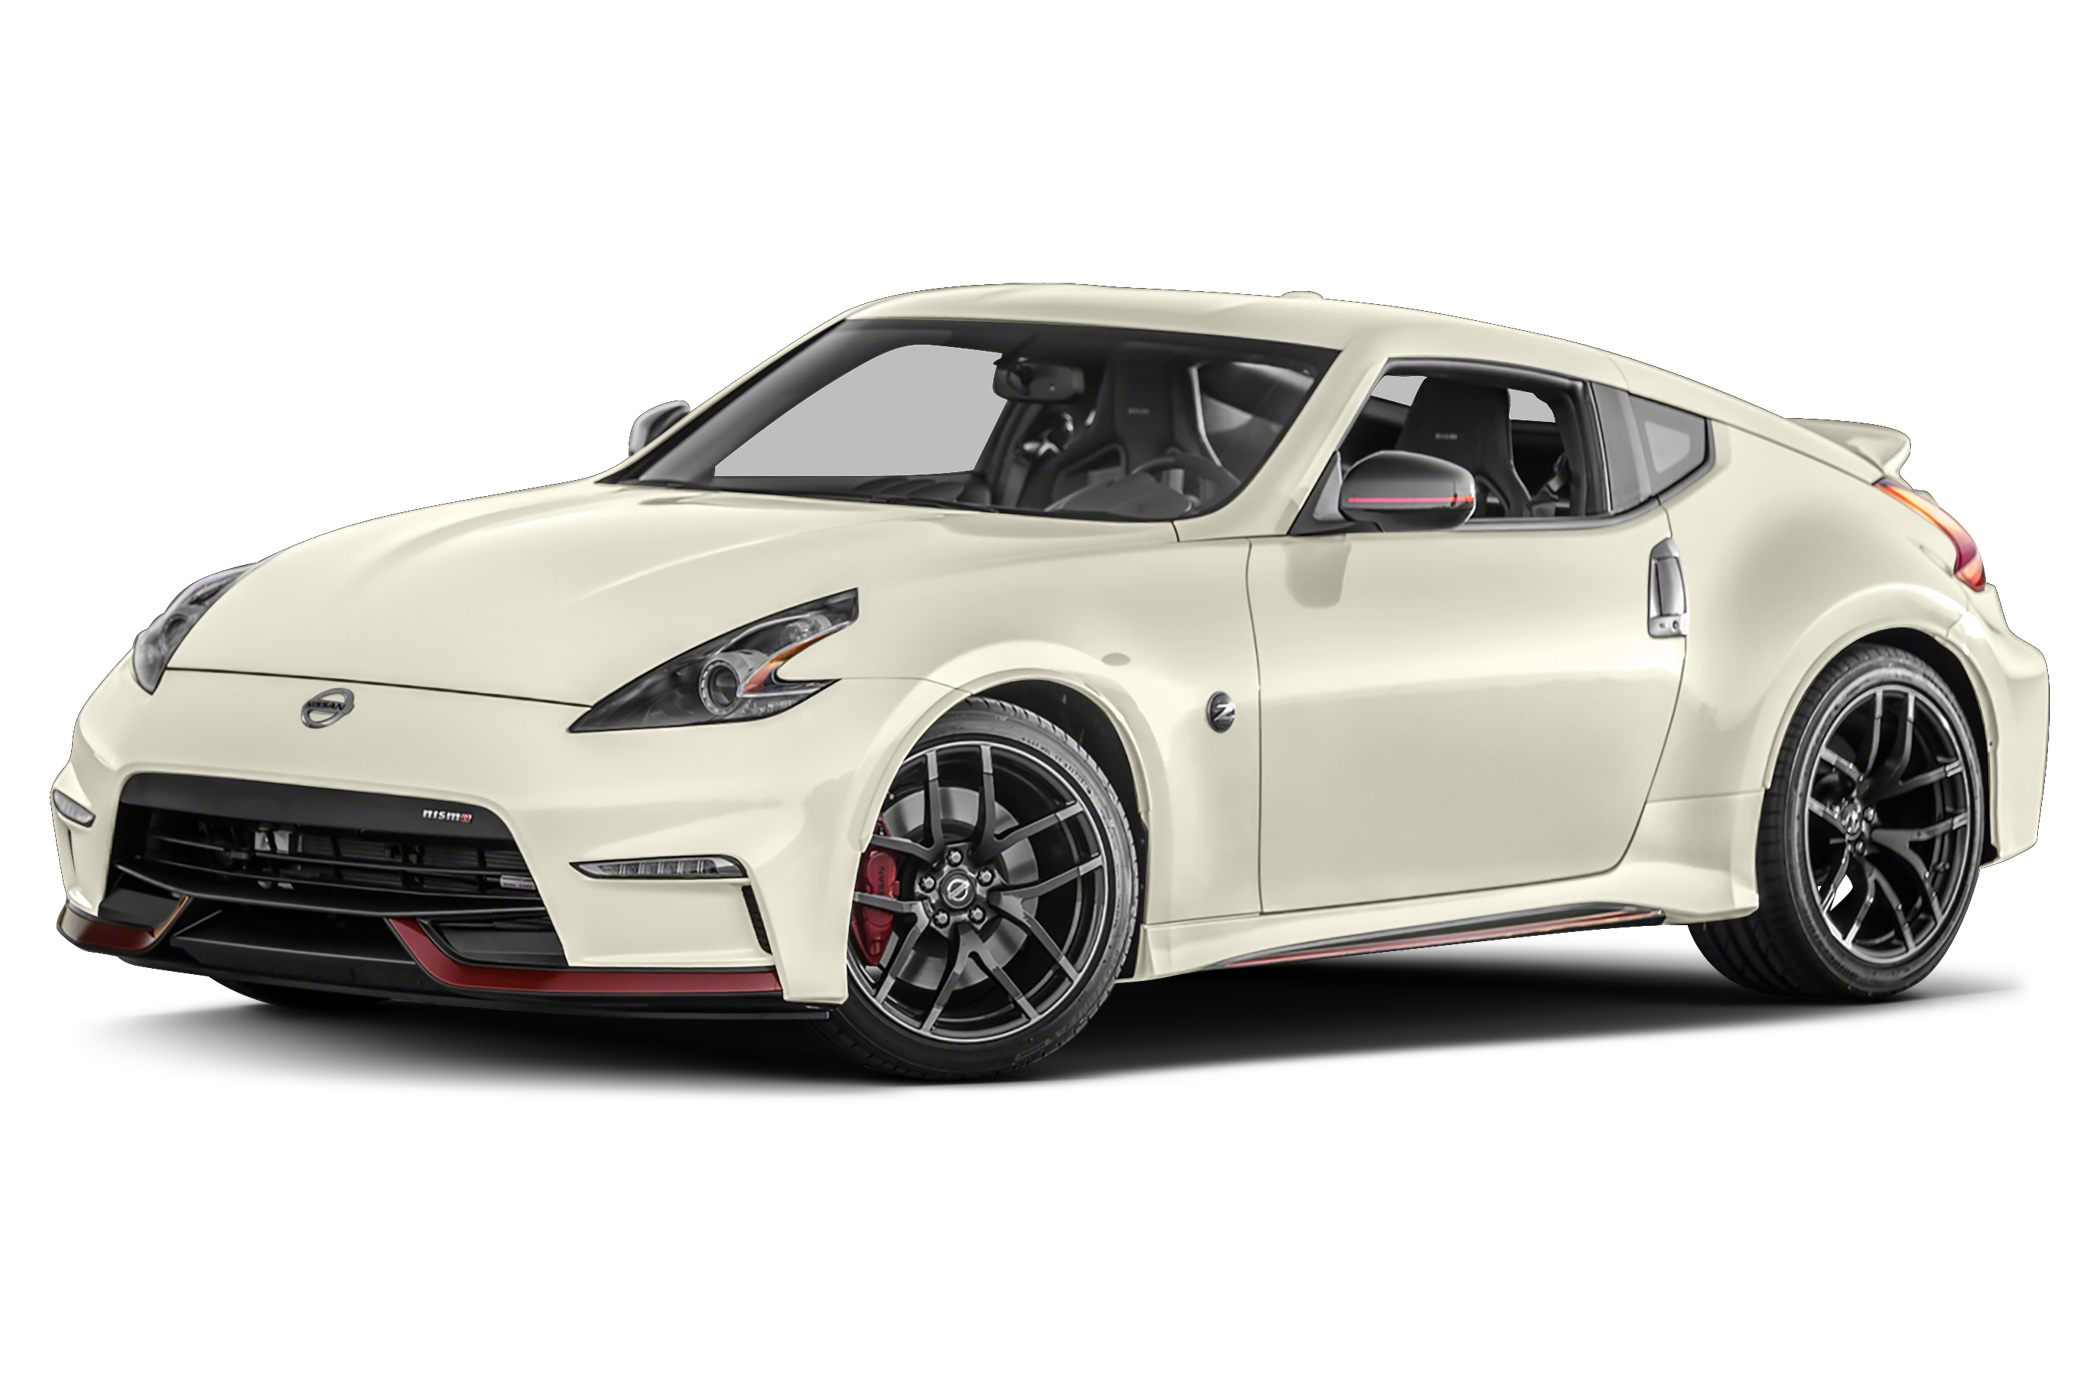 2015 Nissan 370Z NISMO Coupe for sale in Dallas for $43,707 with 6 miles.